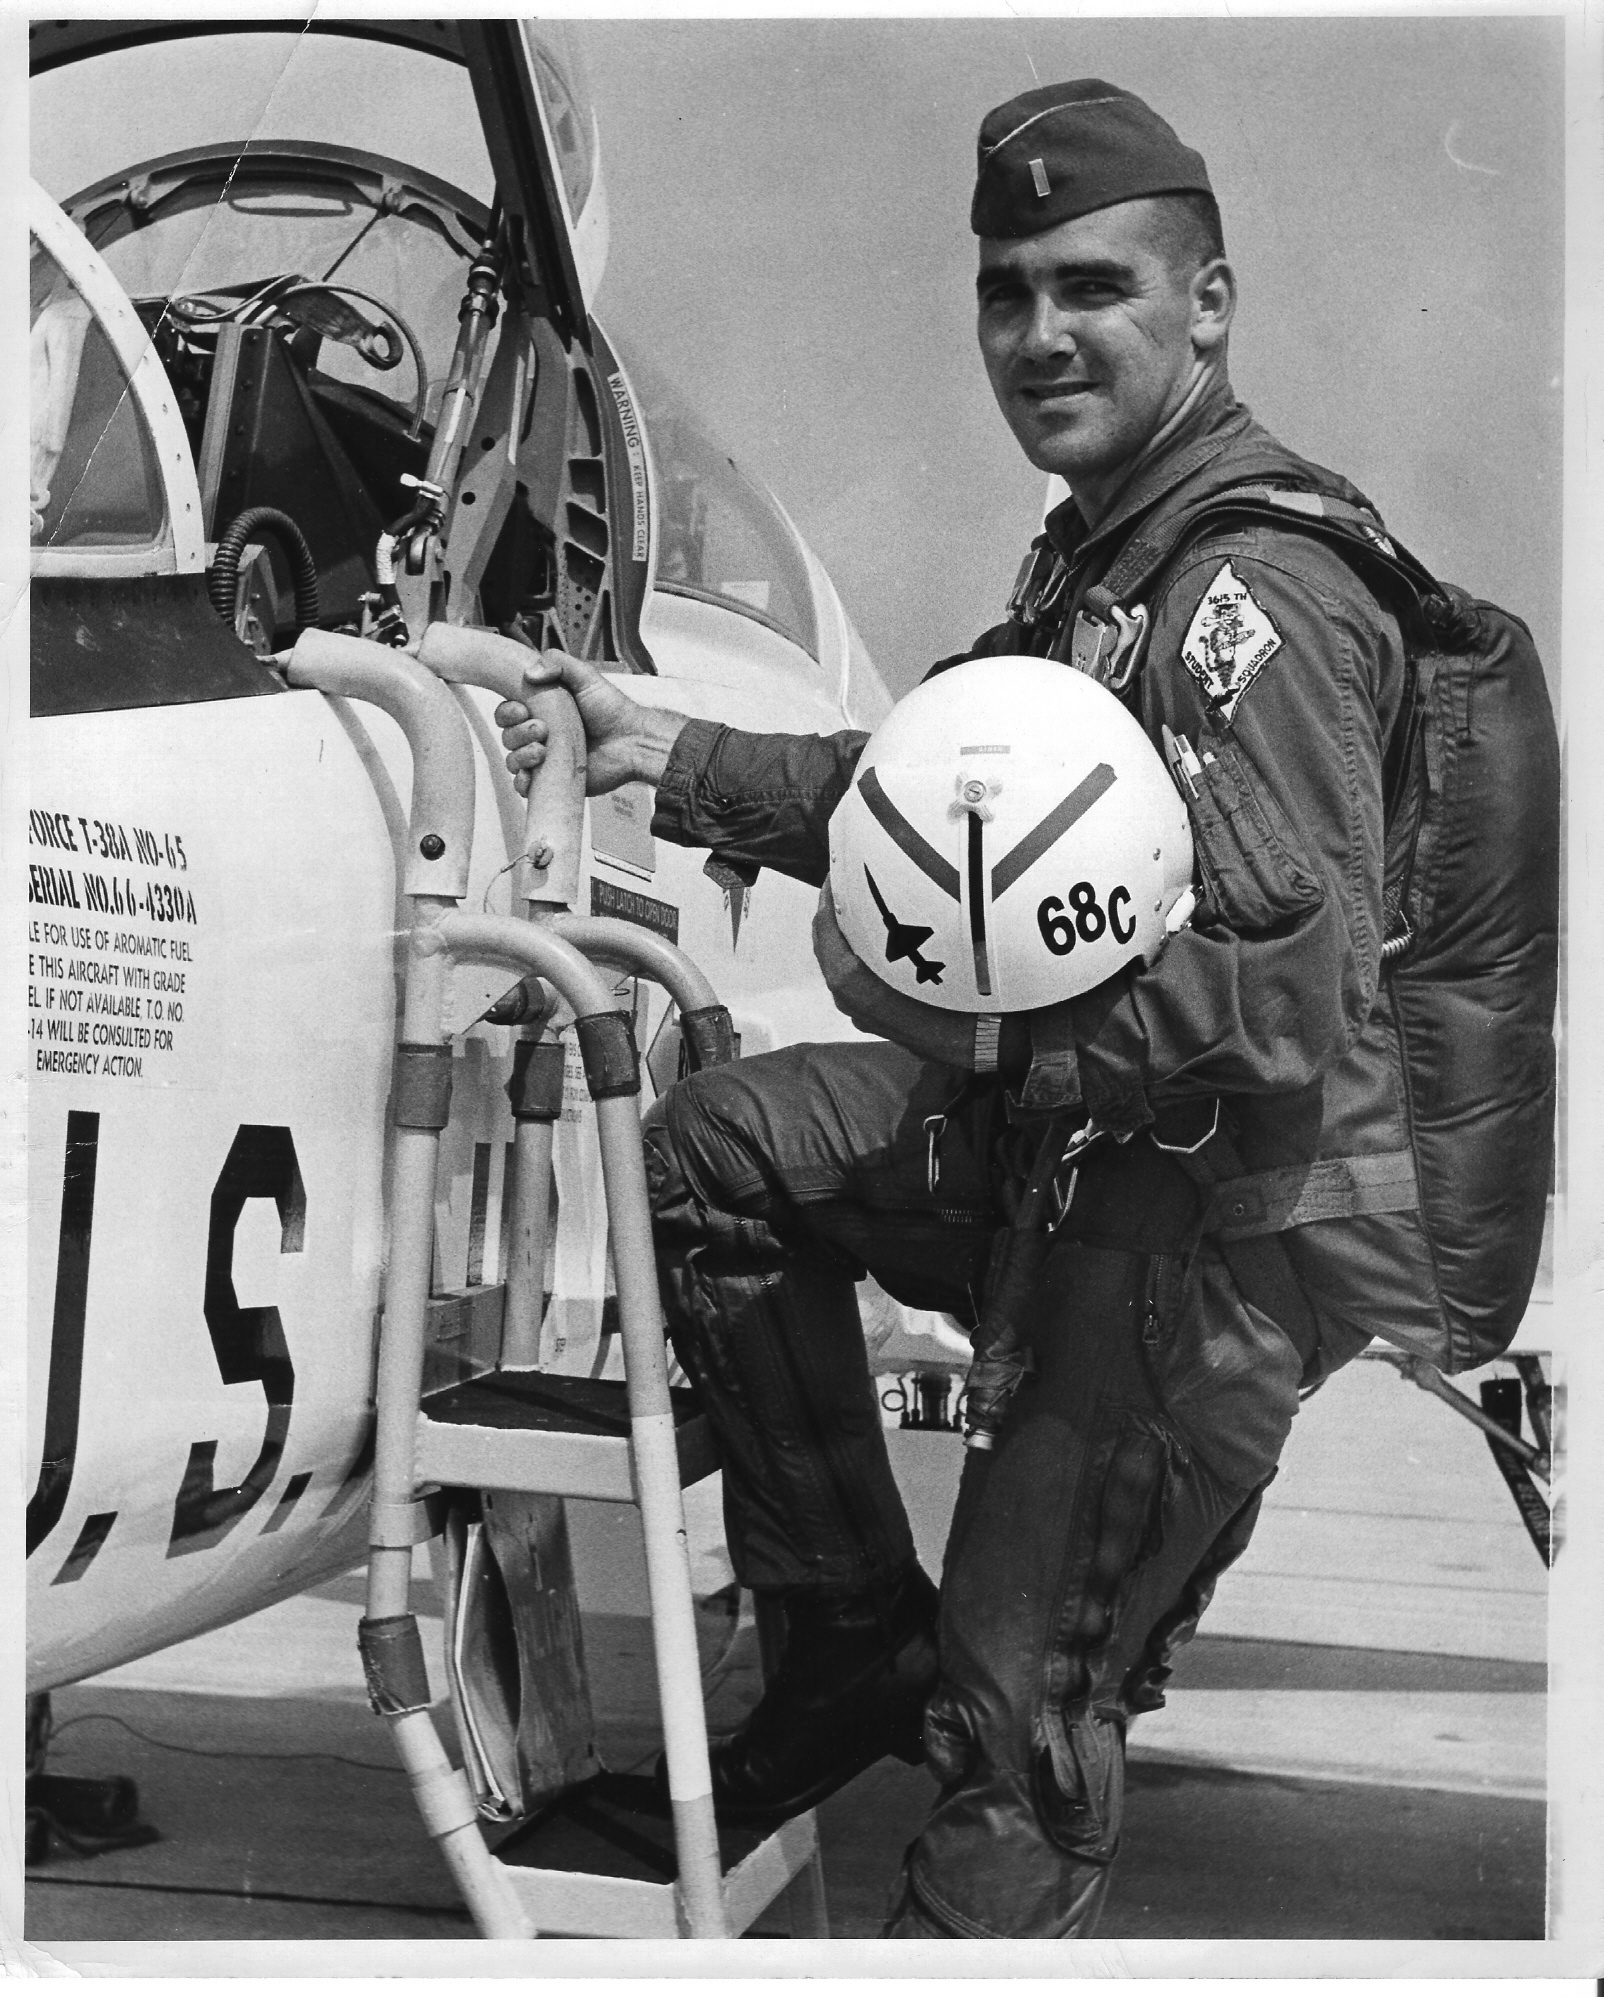 Lt. David Dinan III, 25, was killed March 17, 1969, in Laos.